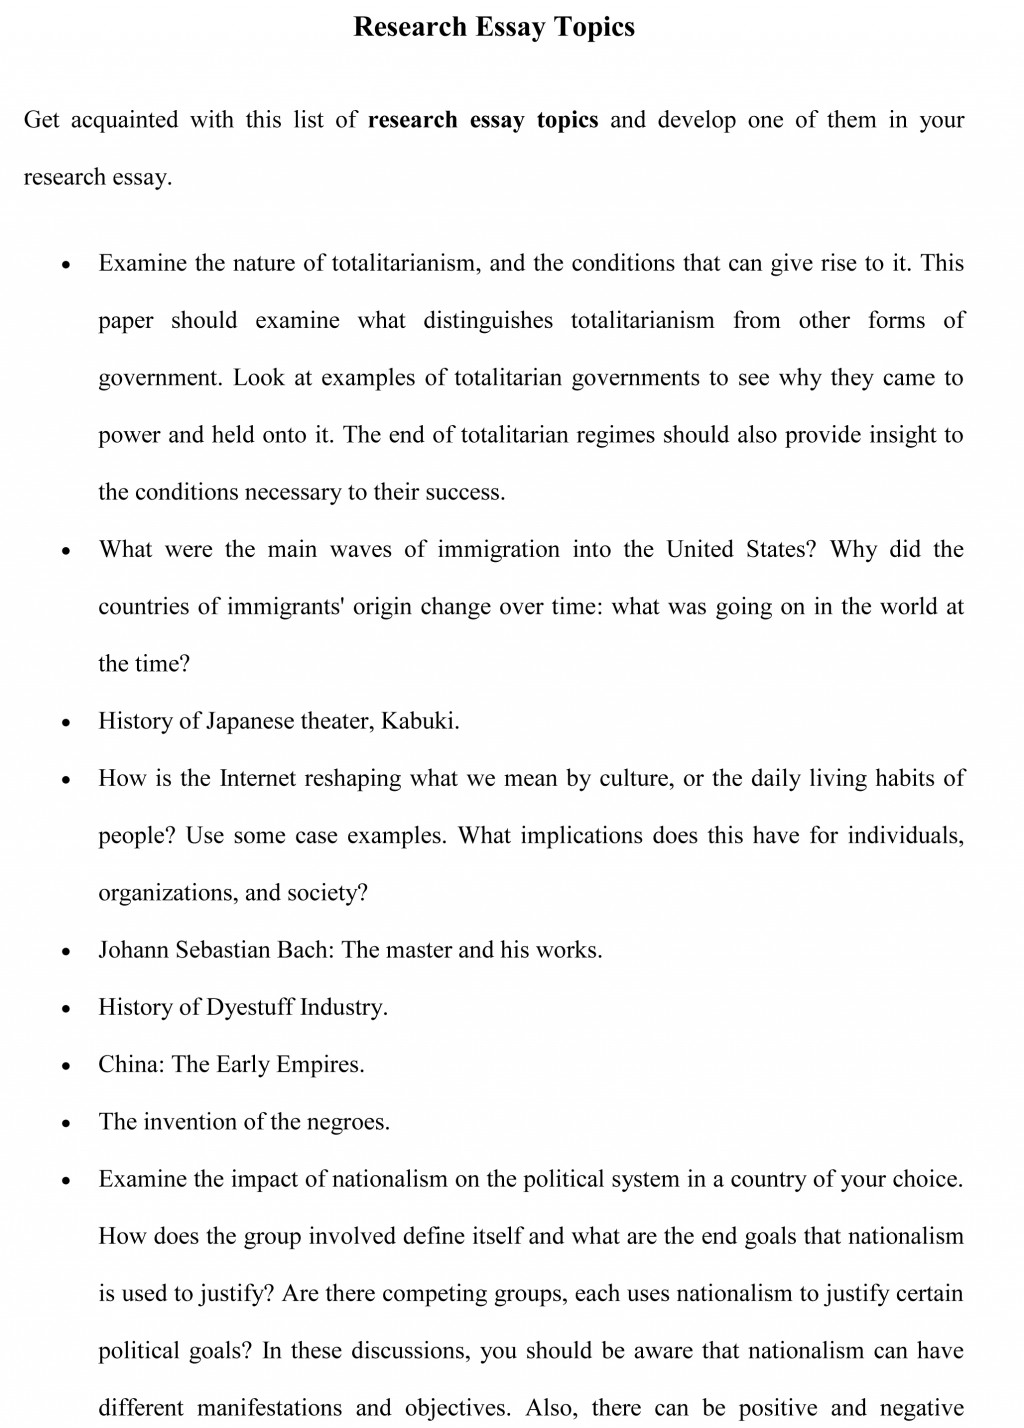 002 Essay Example Research Topics Sample Imposing Paper Format Large